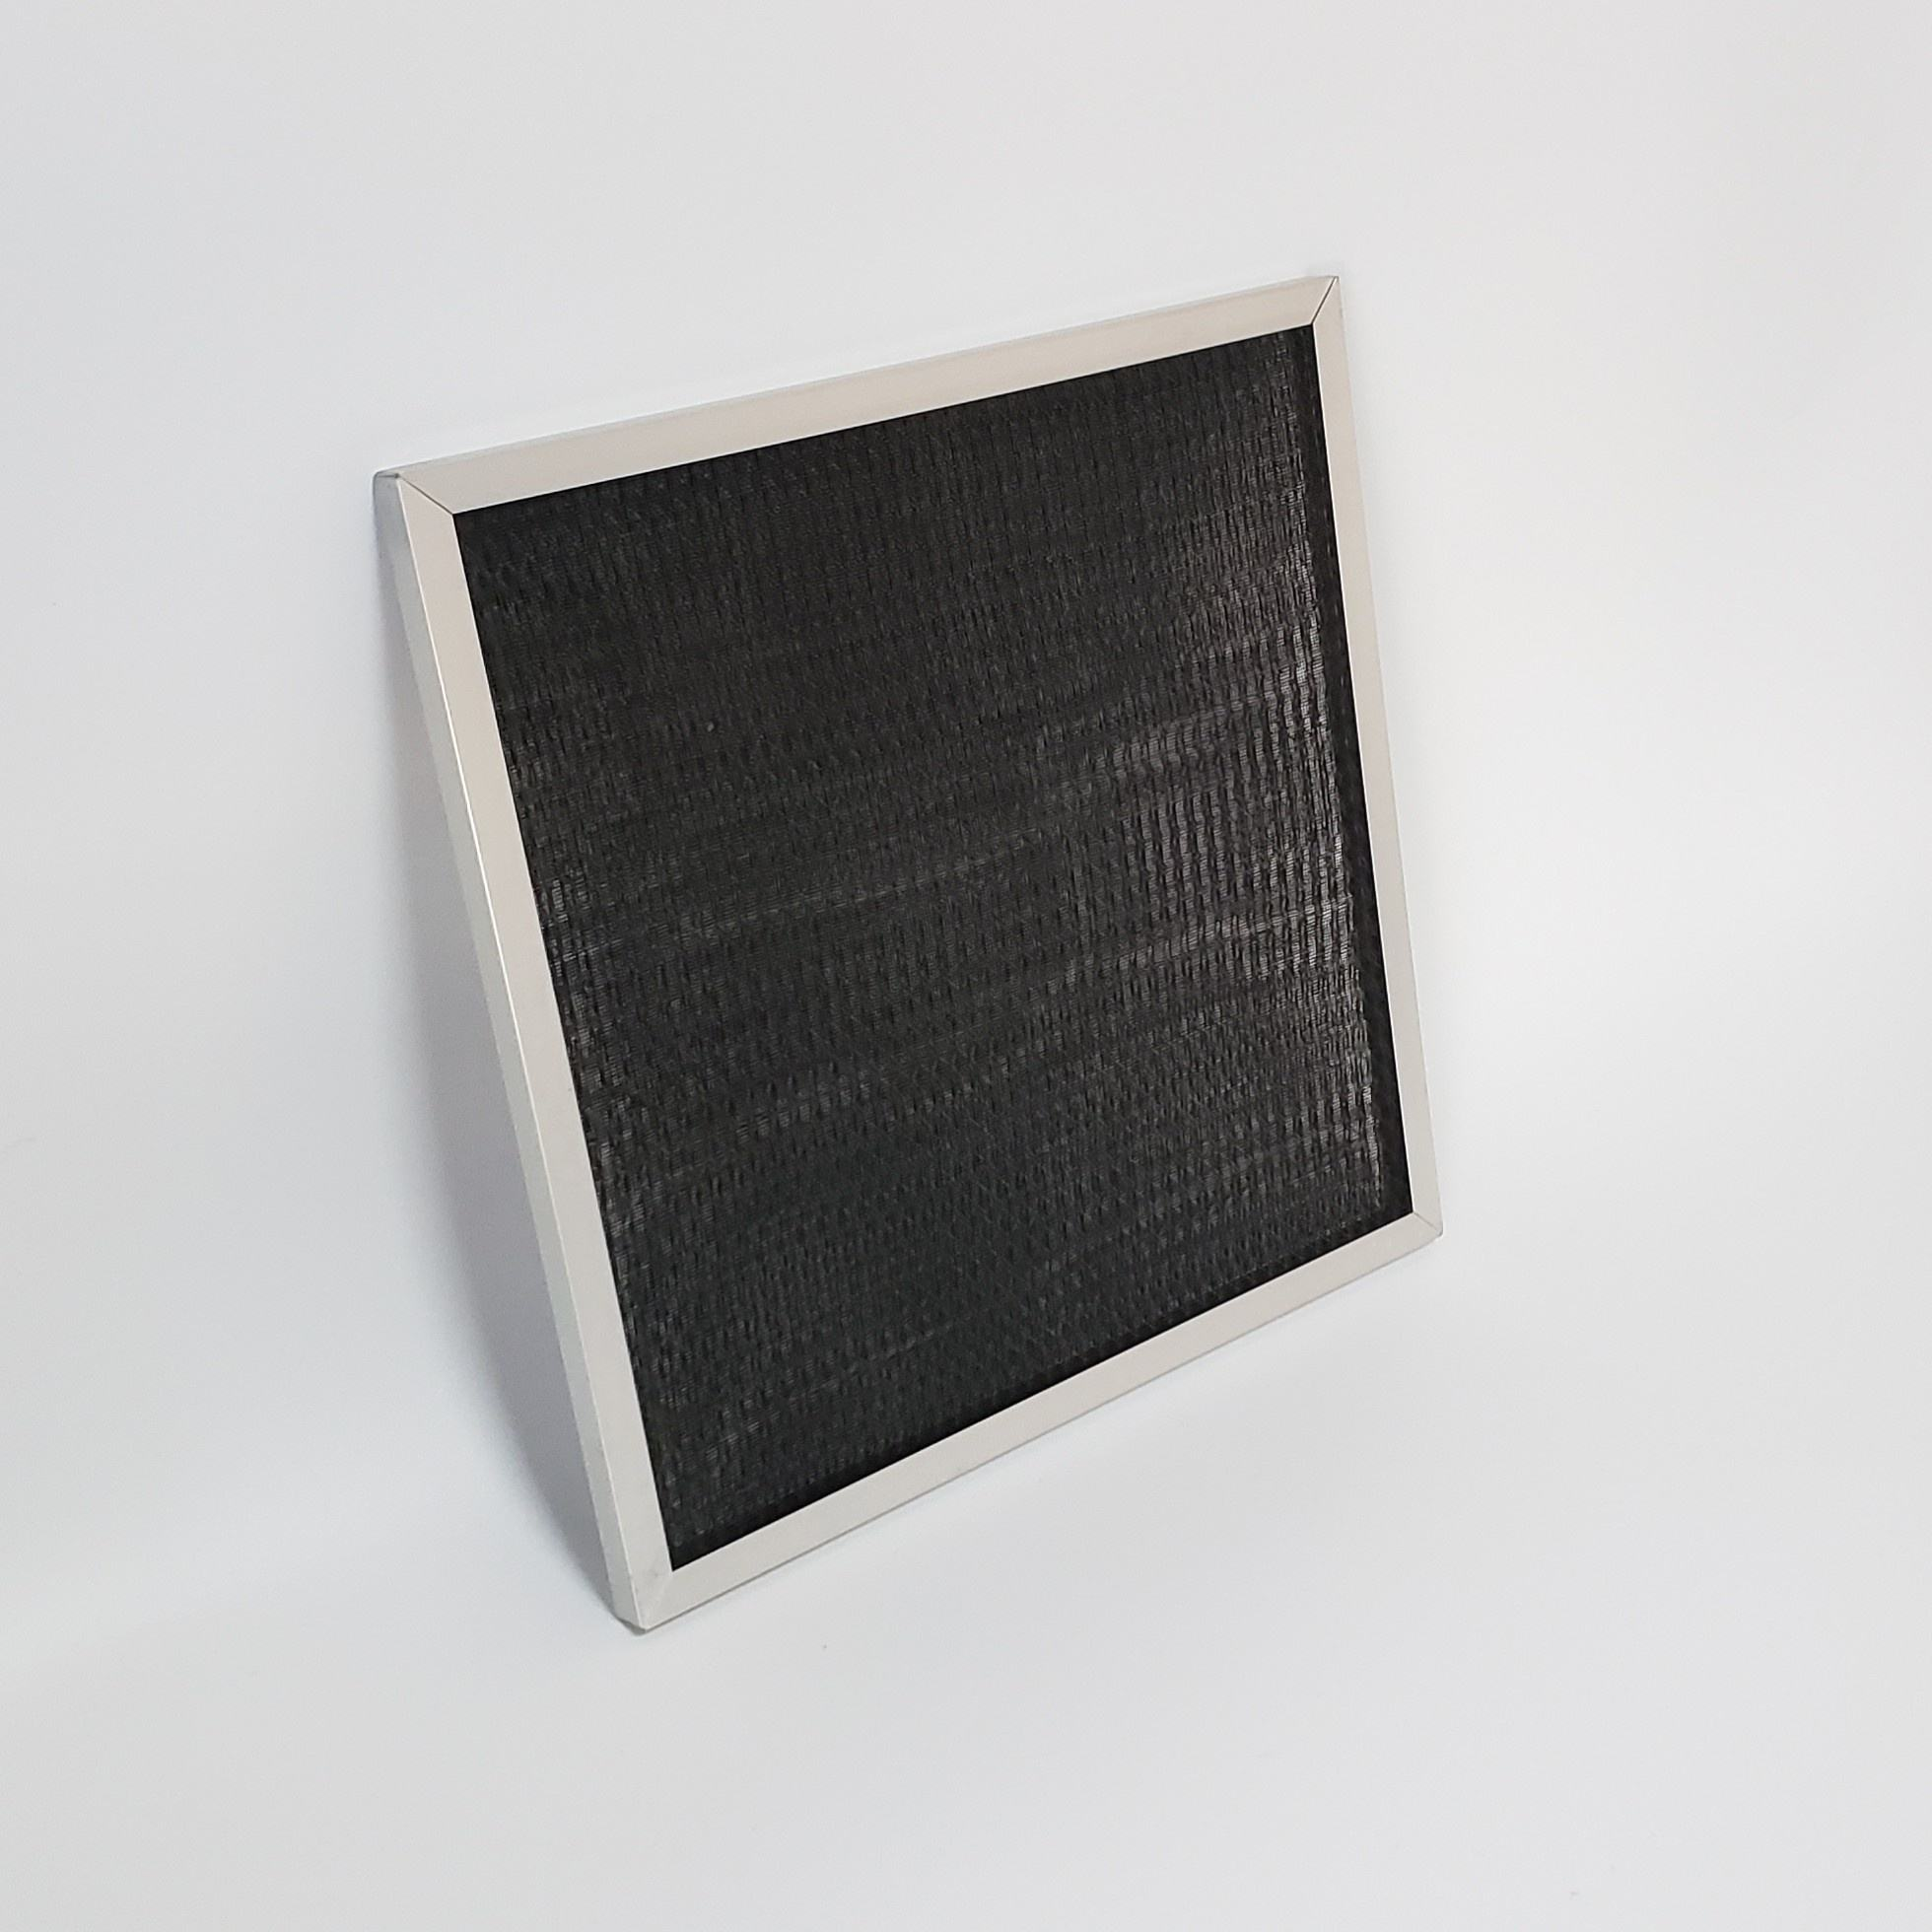 Nylon mesh filter with high quality with metal frame for primary air filter 10mm 20 AHU Insect nets